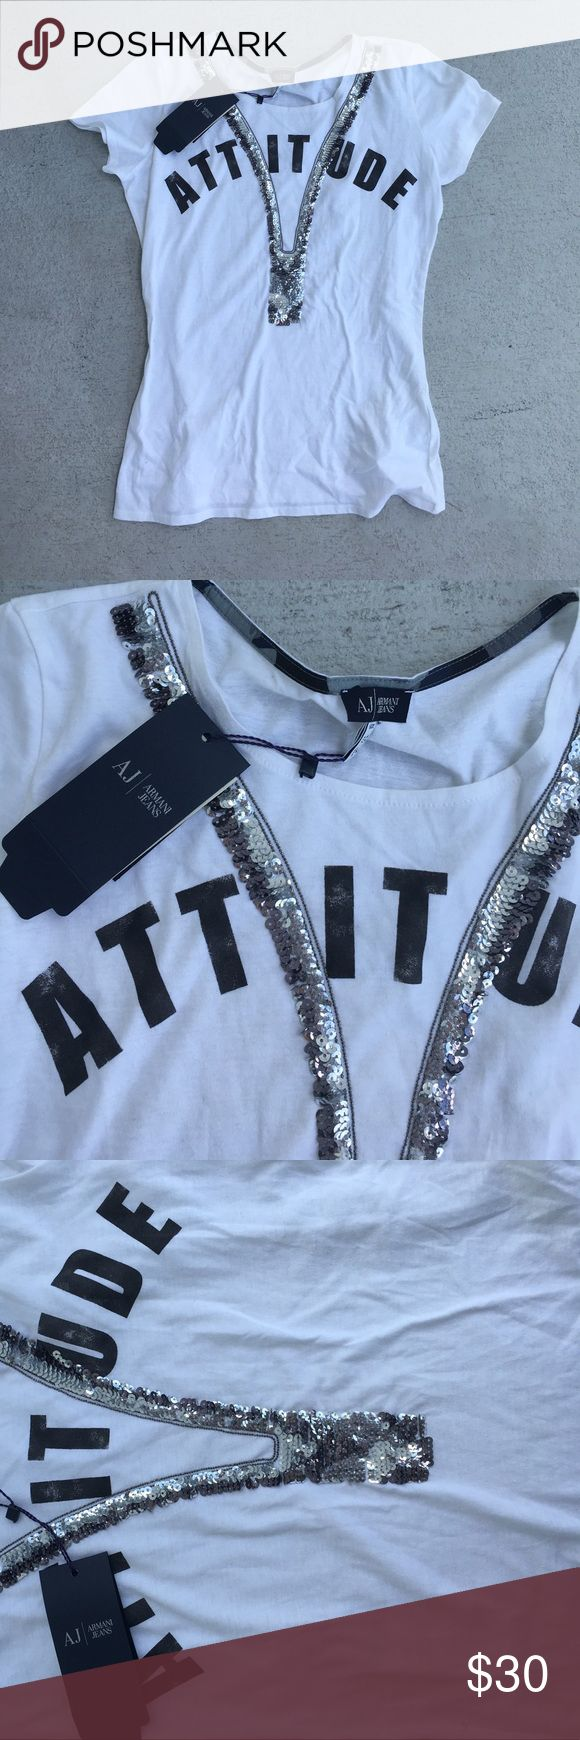 Armani t-shirt Never been worn, with tags. Armani t shirt Armani Jeans Tops Tees - Short Sleeve